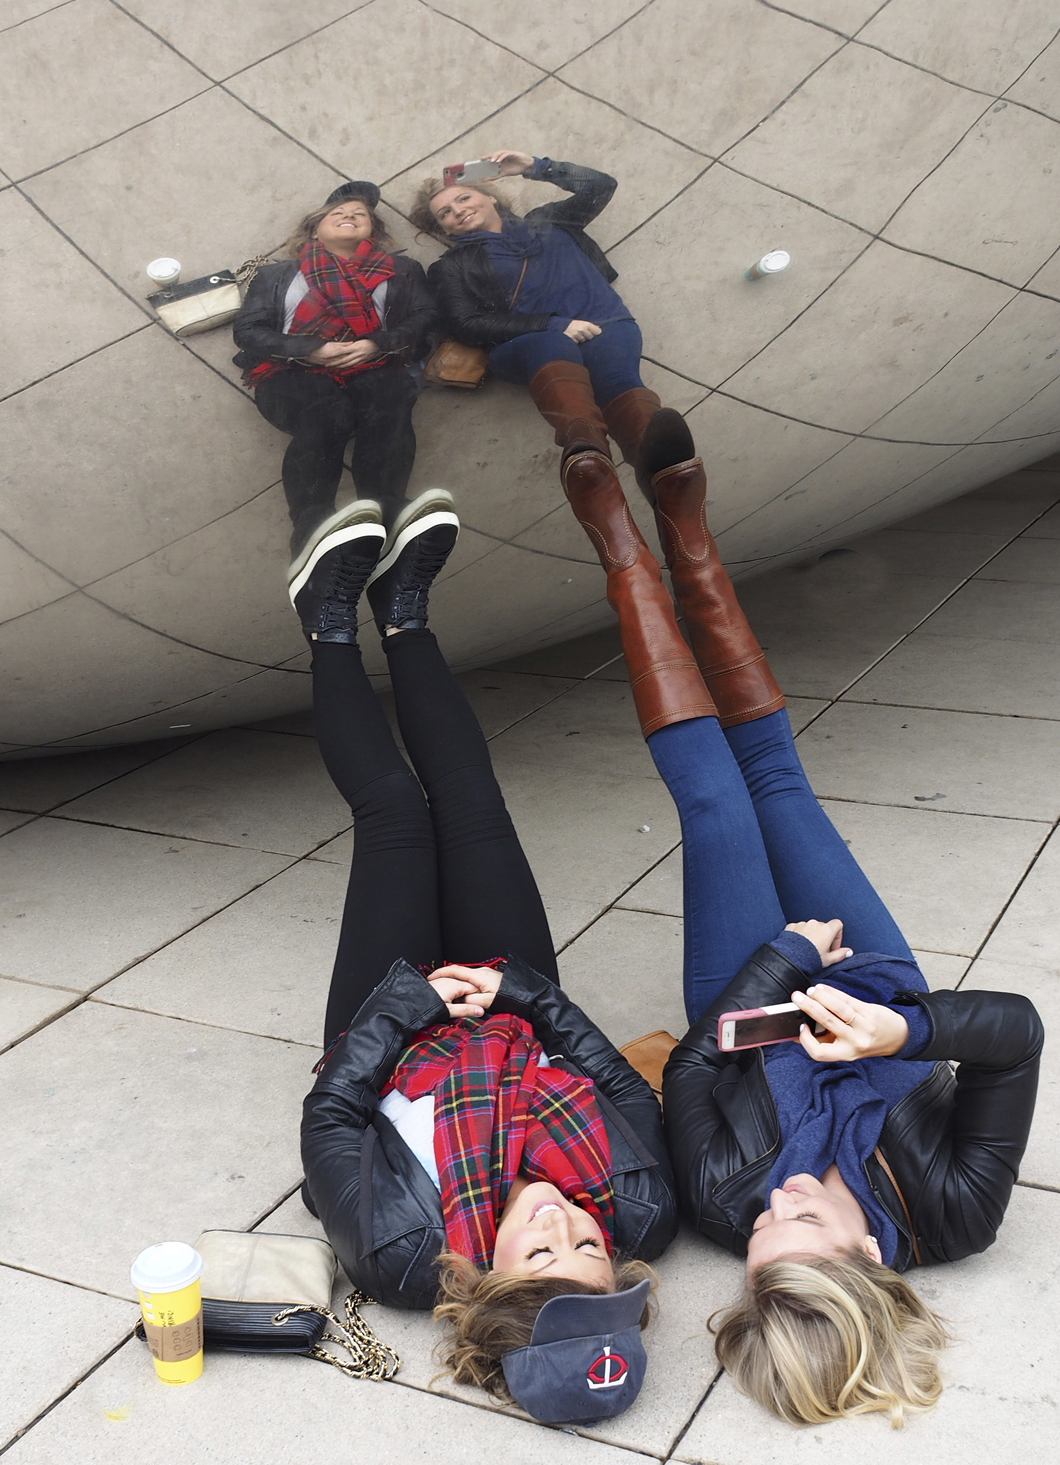 Reflections in the Bean - Color Print (Open) - Name Withheld Per Request